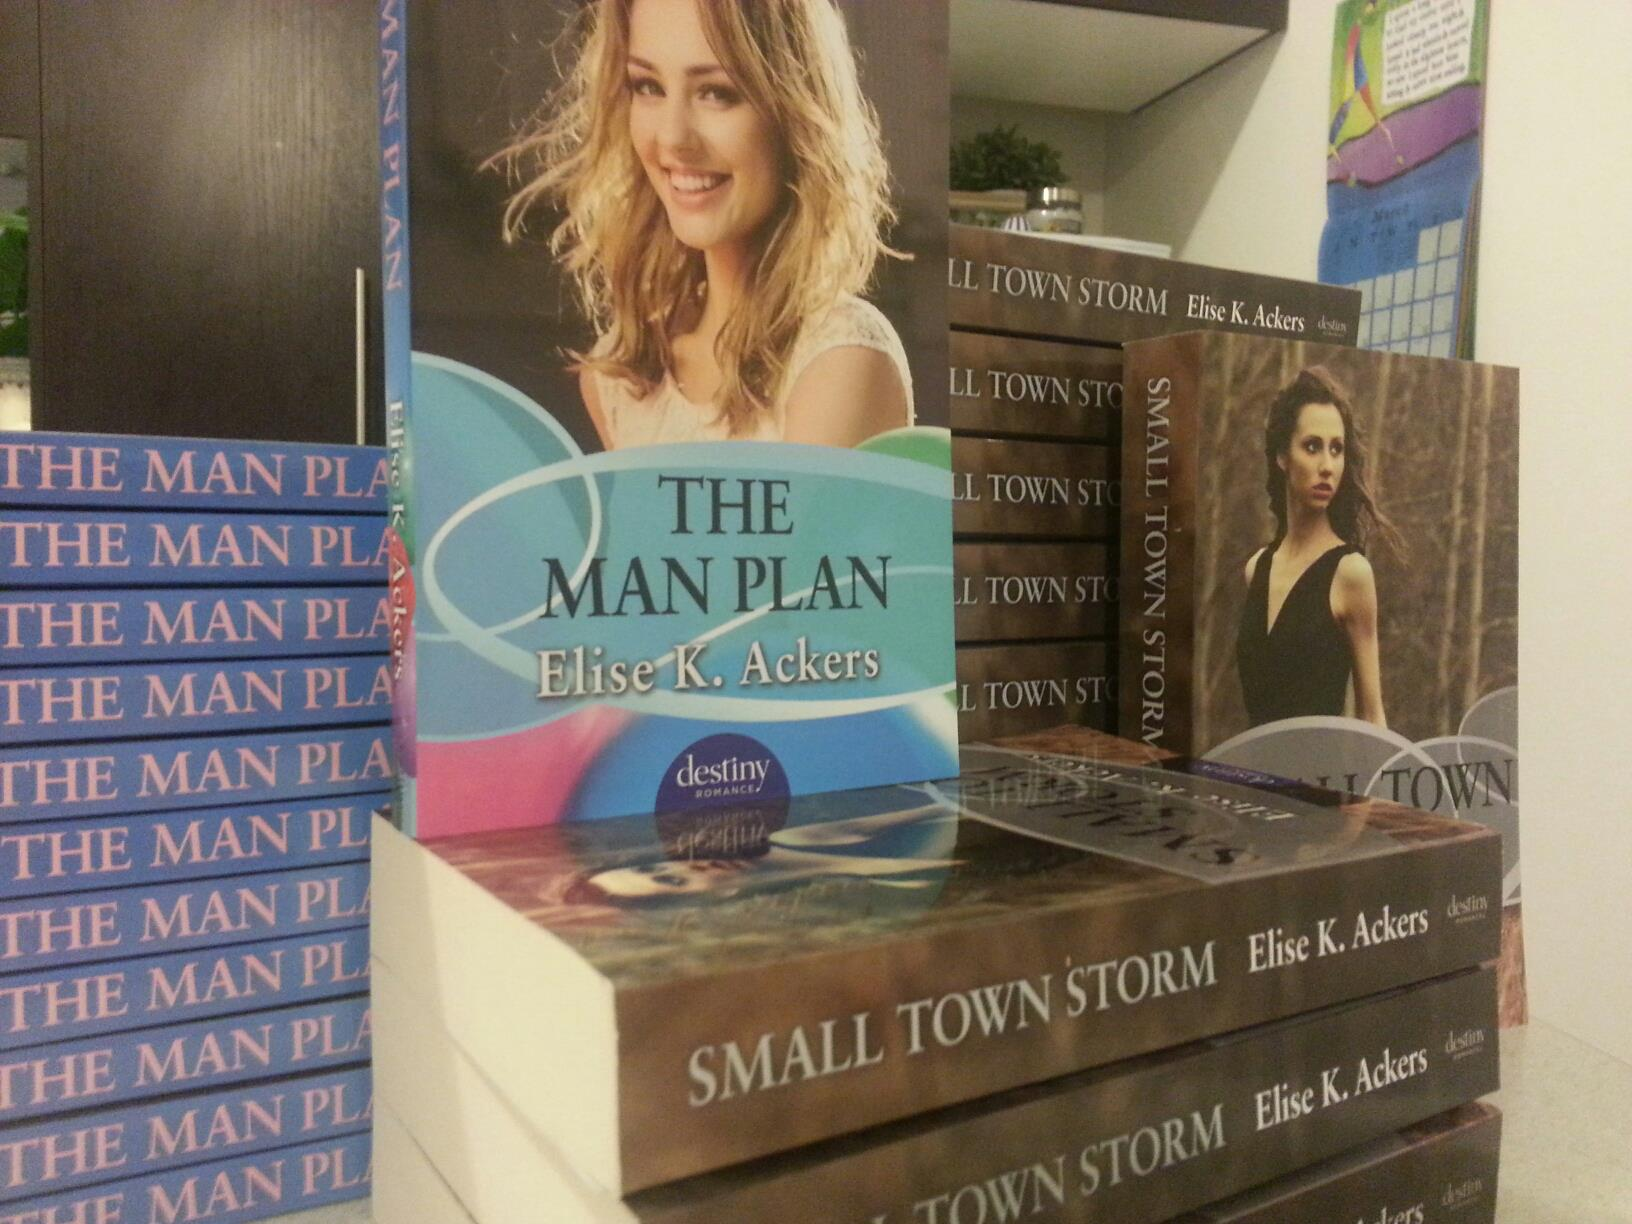 The Man Plan, Elise K Ackers